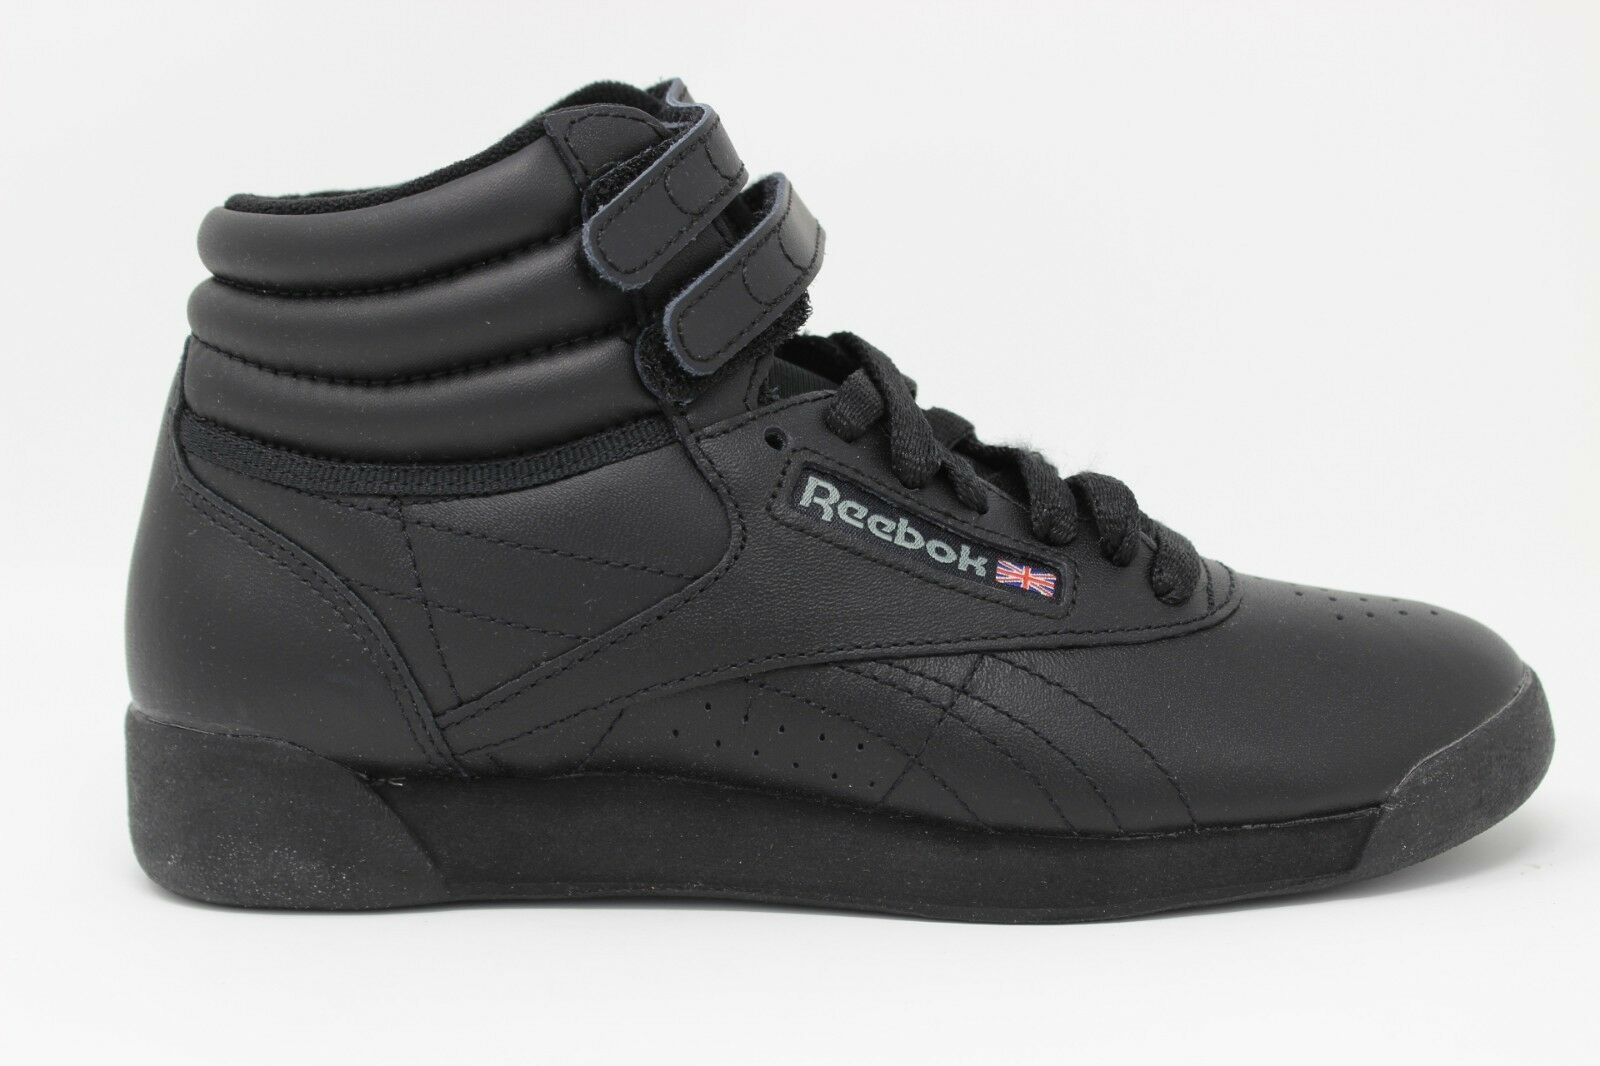 4d879b9f065 Reebok 71 Classic Leather Hi Top Sneaker - Black 8.5 for sale online ...